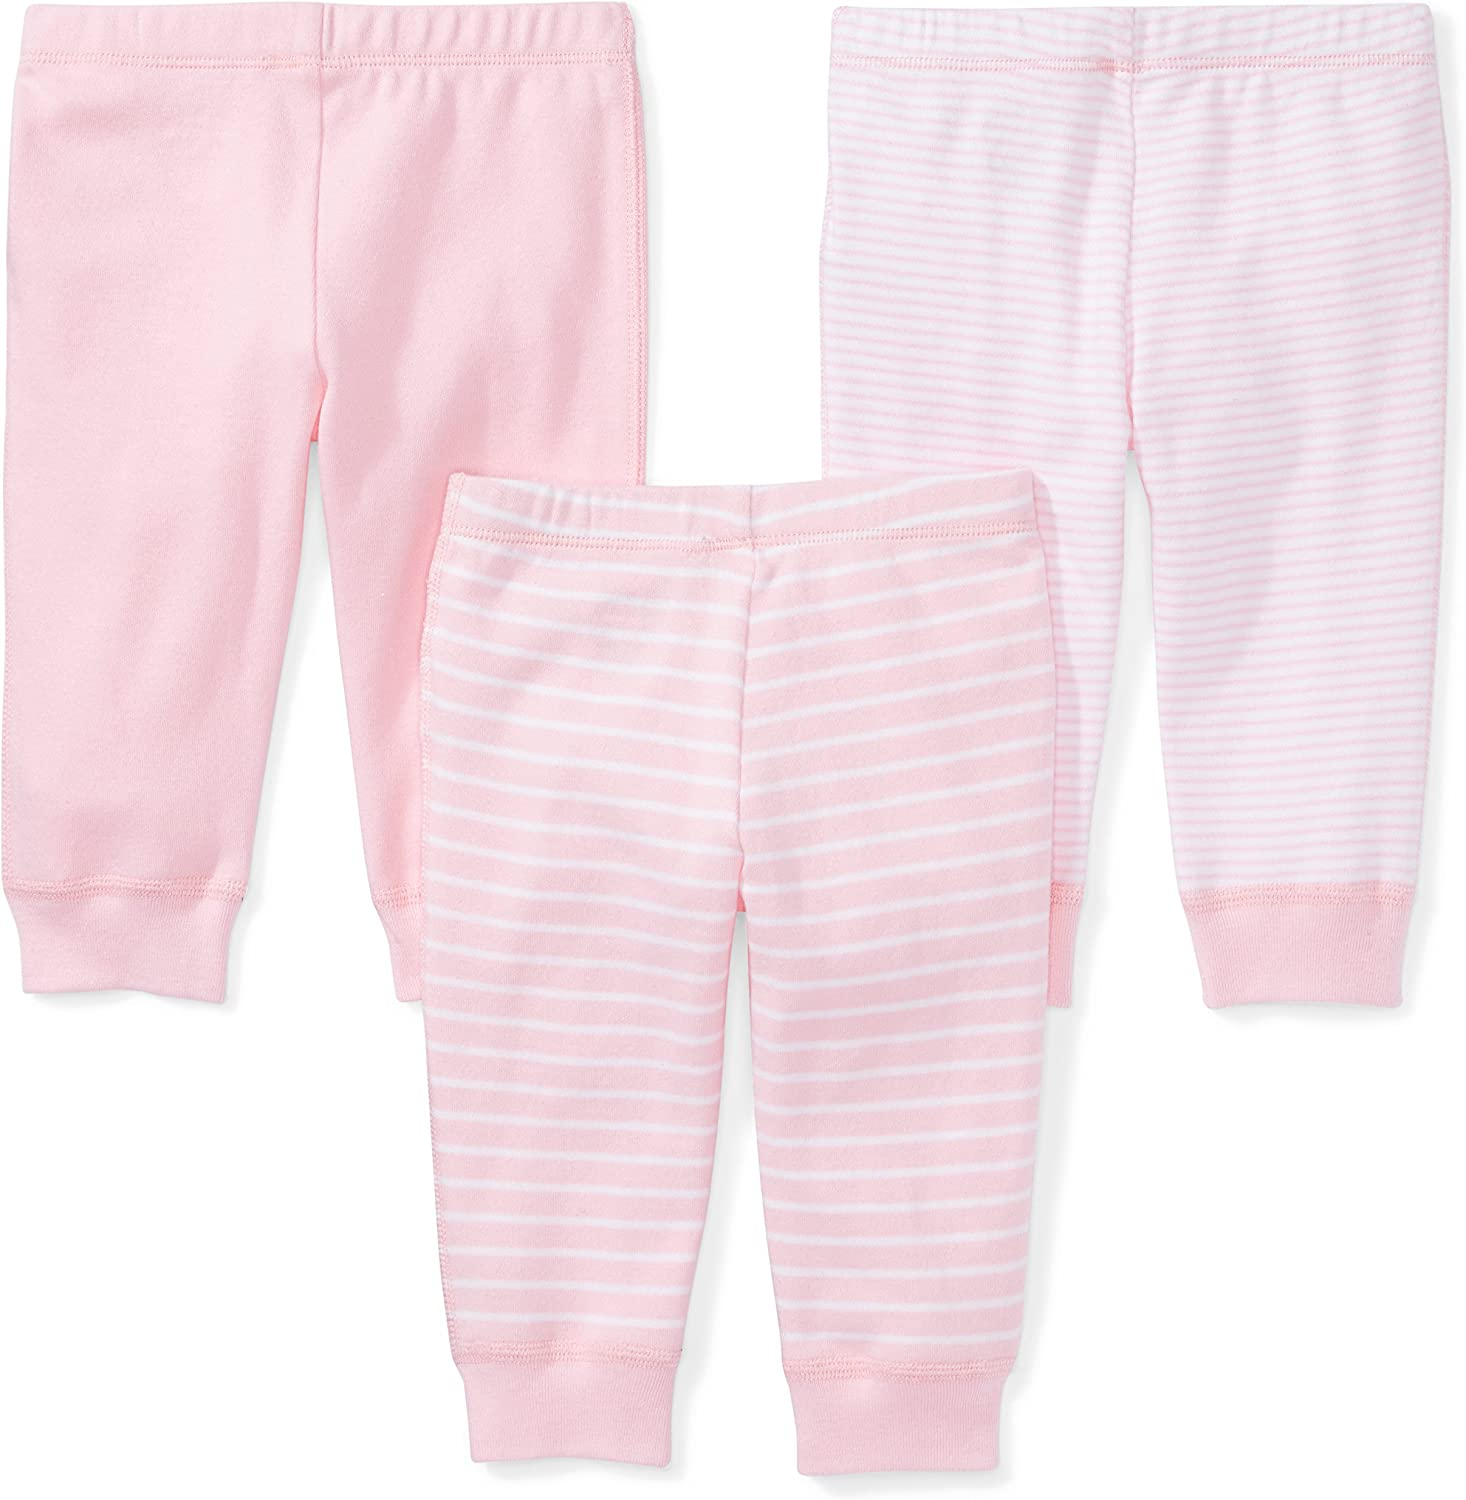 Moon and Back Baby Set of 3 Organic Cotton Pants